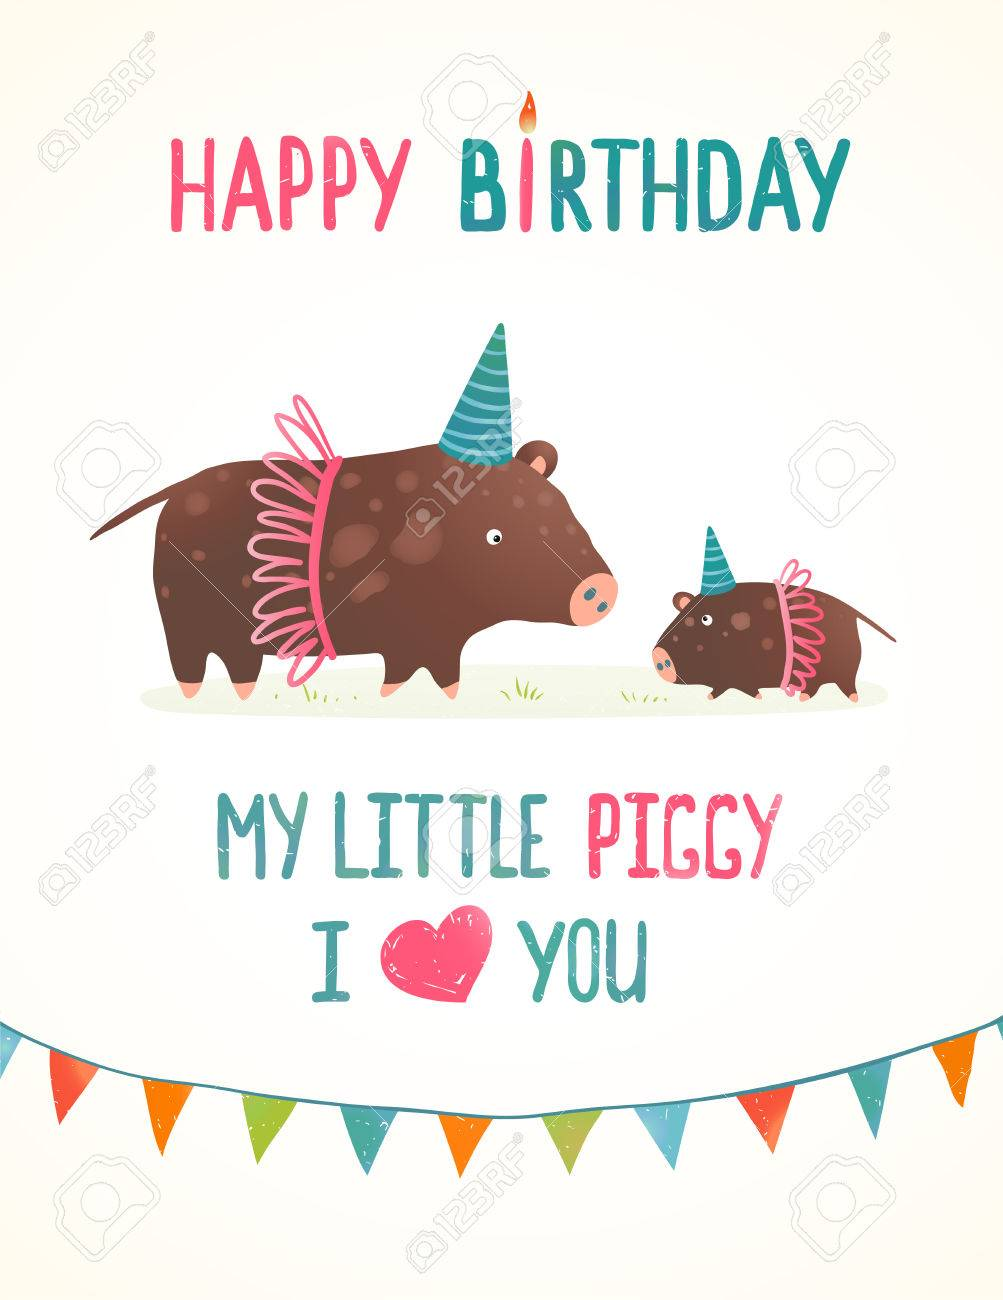 Little piggy and mother birthday greeting card cartoon little piggy and mother birthday greeting card cartoon illustration cute pigs in clothes mama love design kristyandbryce Gallery